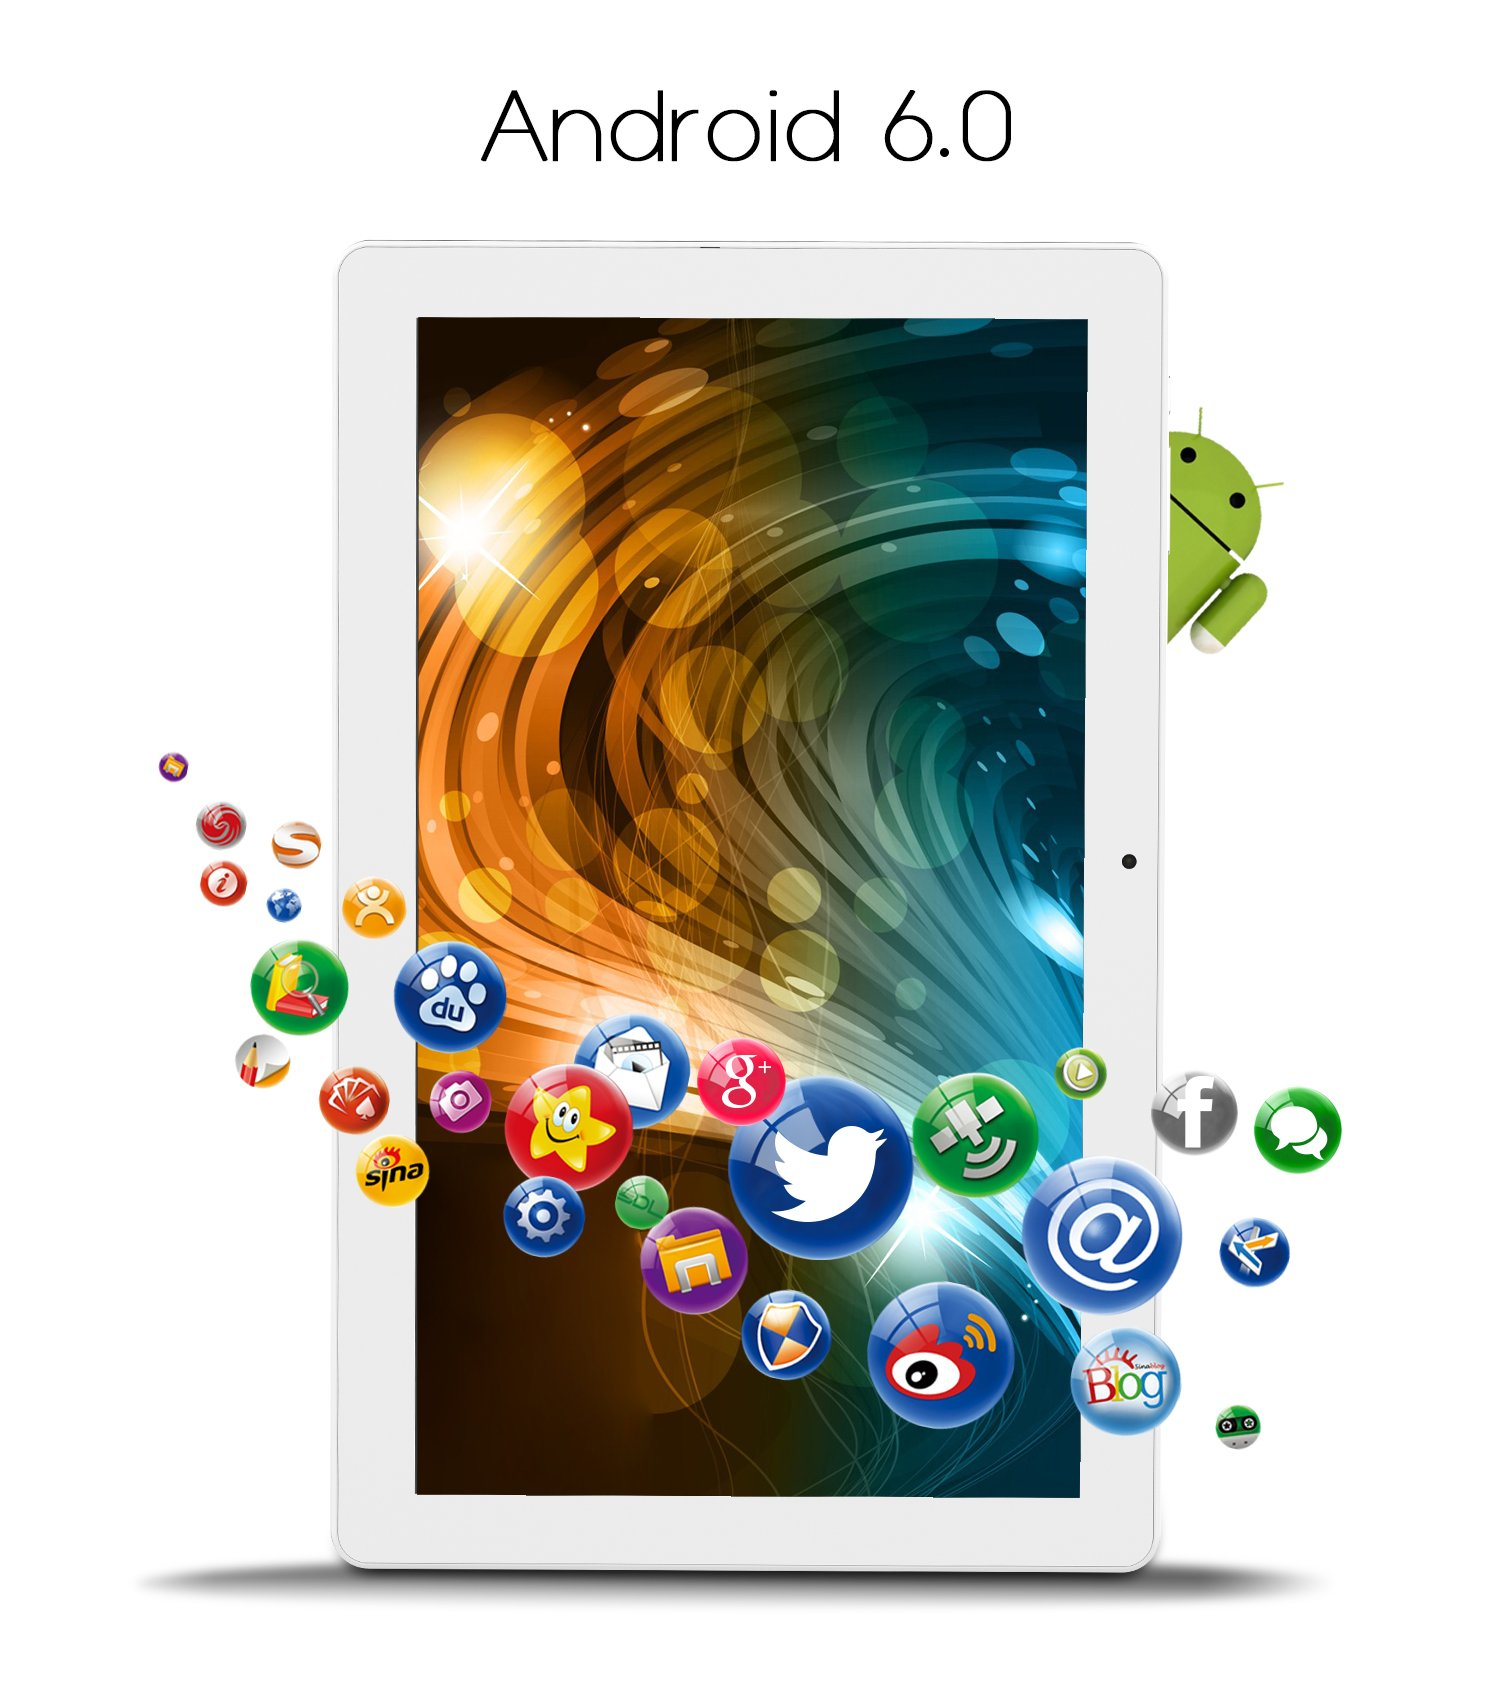 ALLDOCUBE iPlay10 / U83 10.6 inch 1920 x 1080 IPS Display Screen Tablet, Cube Android 6.0 Tablet Quad Core MTK MT8163 64-bit 1.3Ghz, 2GB+32GB, Support 5Ghz + 2.4Ghz WiFi and HDMI Output, White Silver by ALLDOCUBE (Image #4)